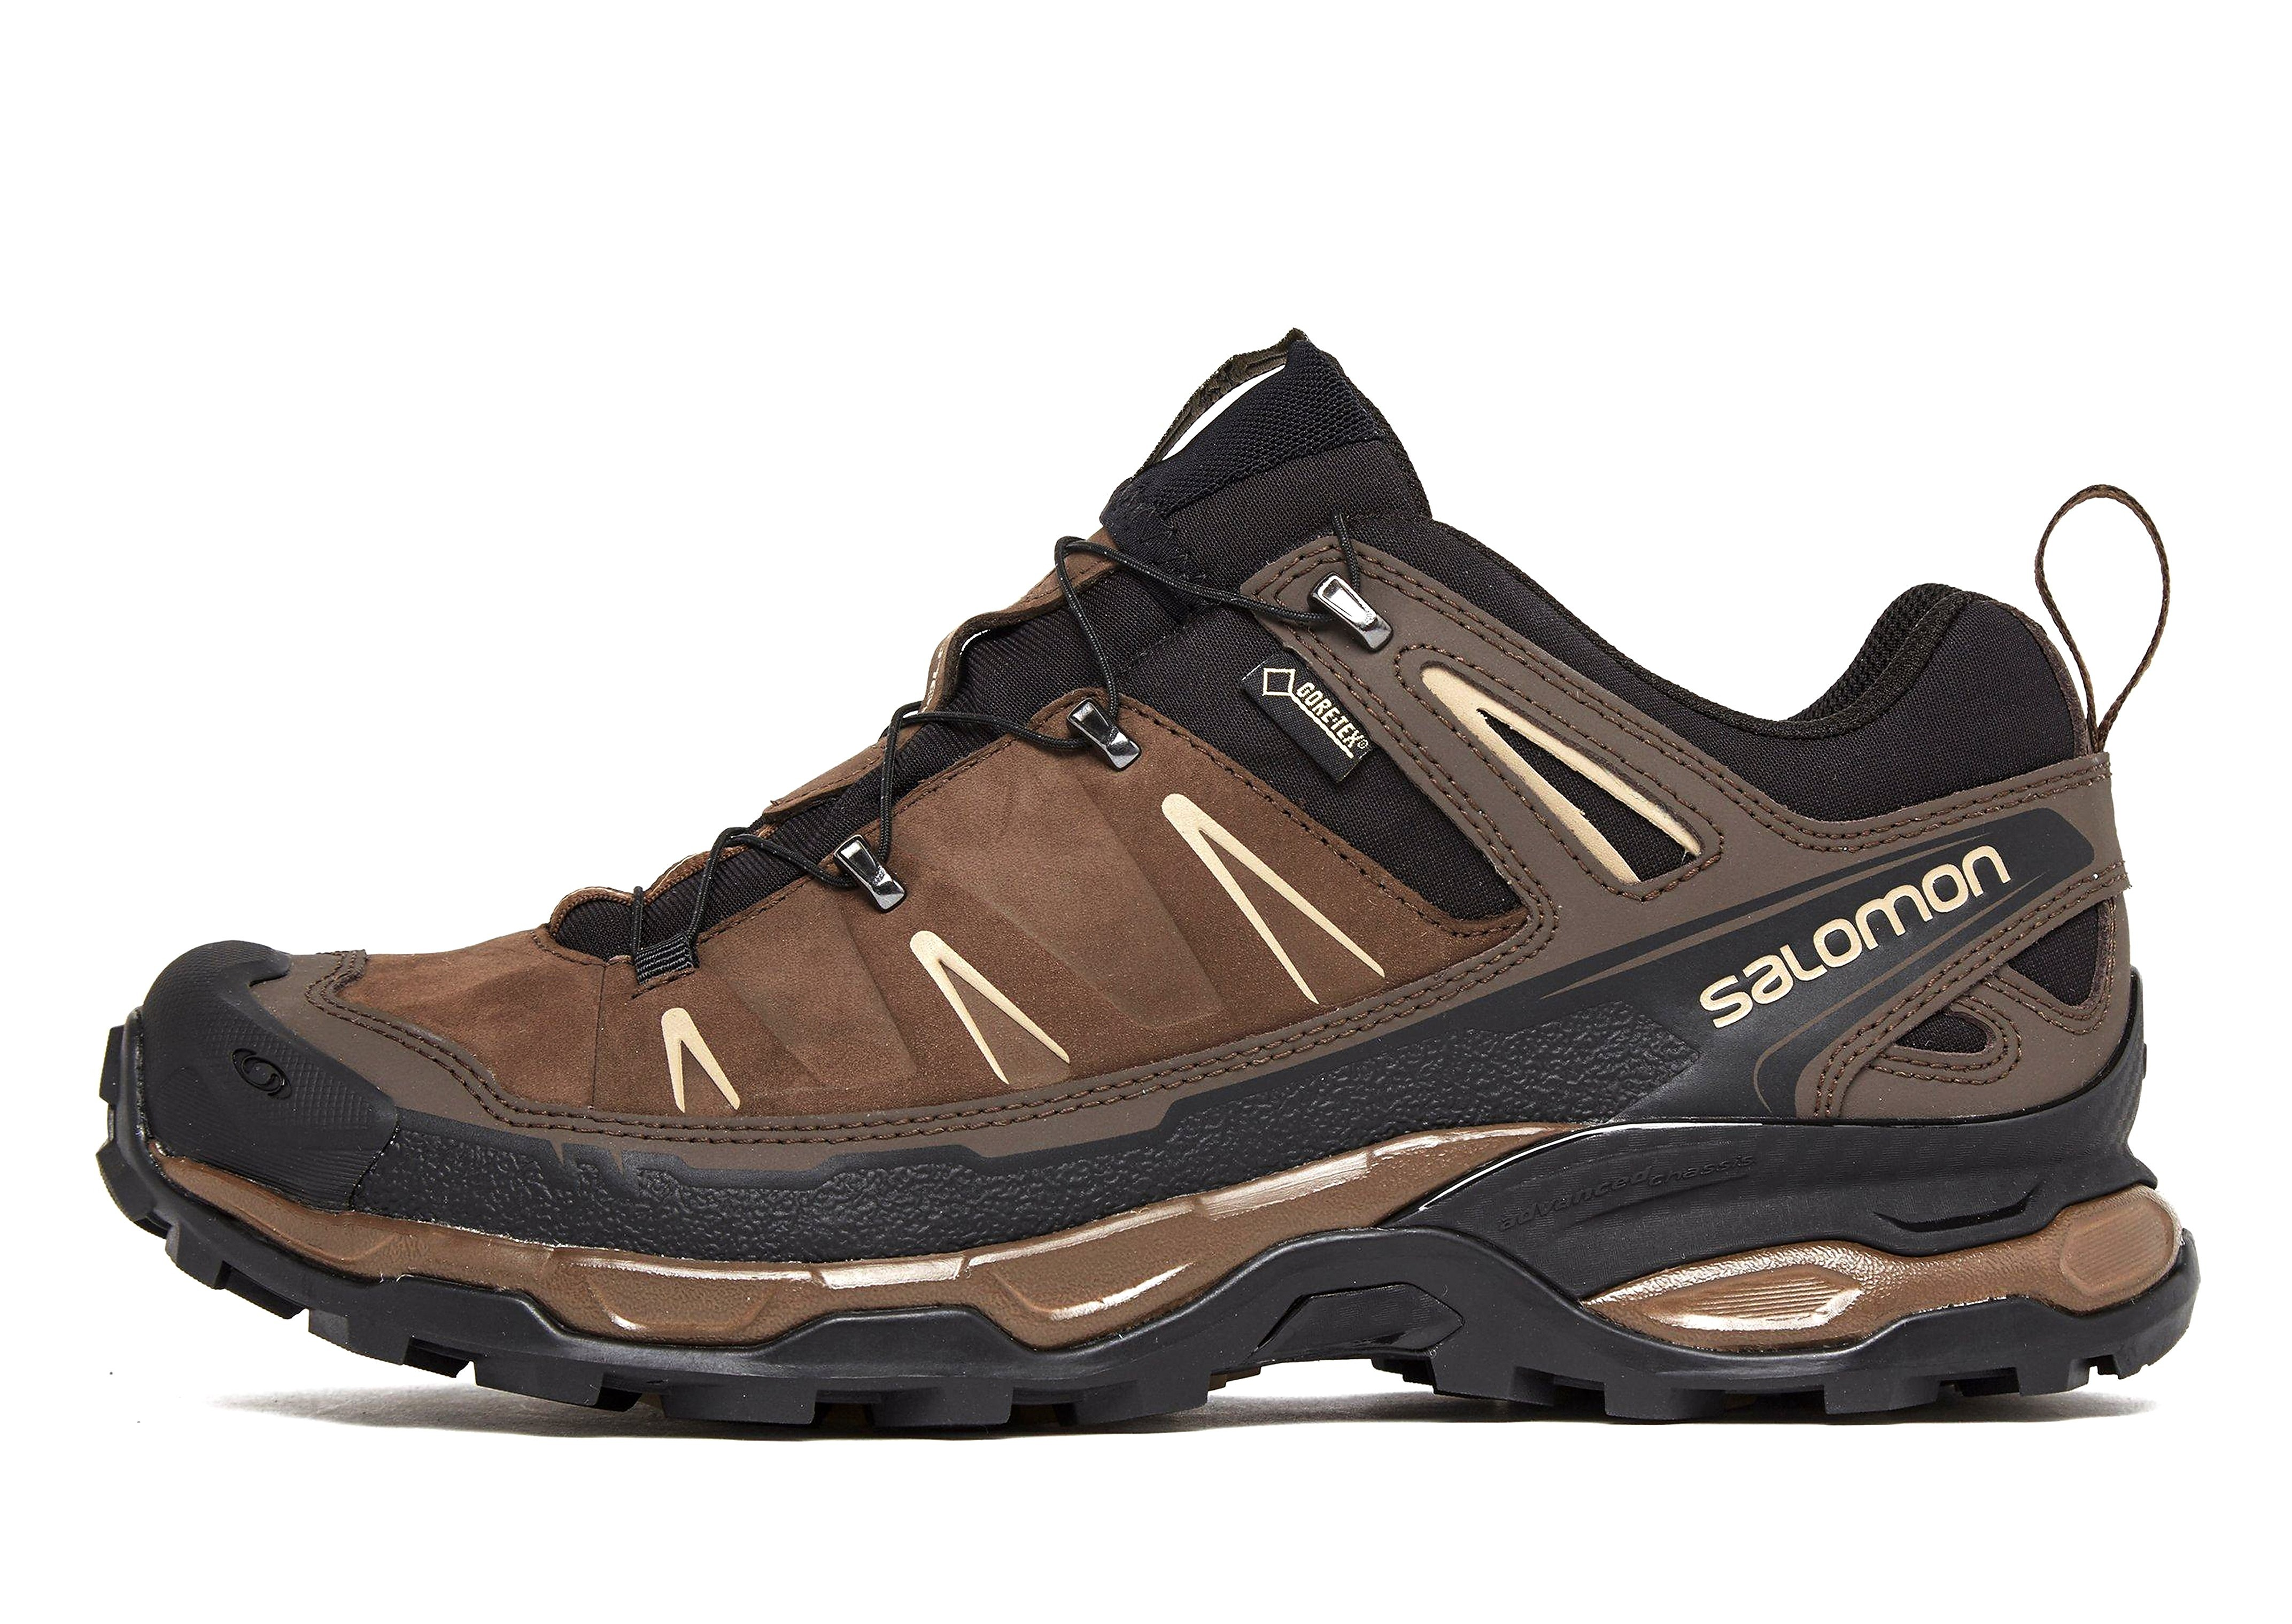 Salomon Salomon X Ultra LTR GTX Hiking Shoes